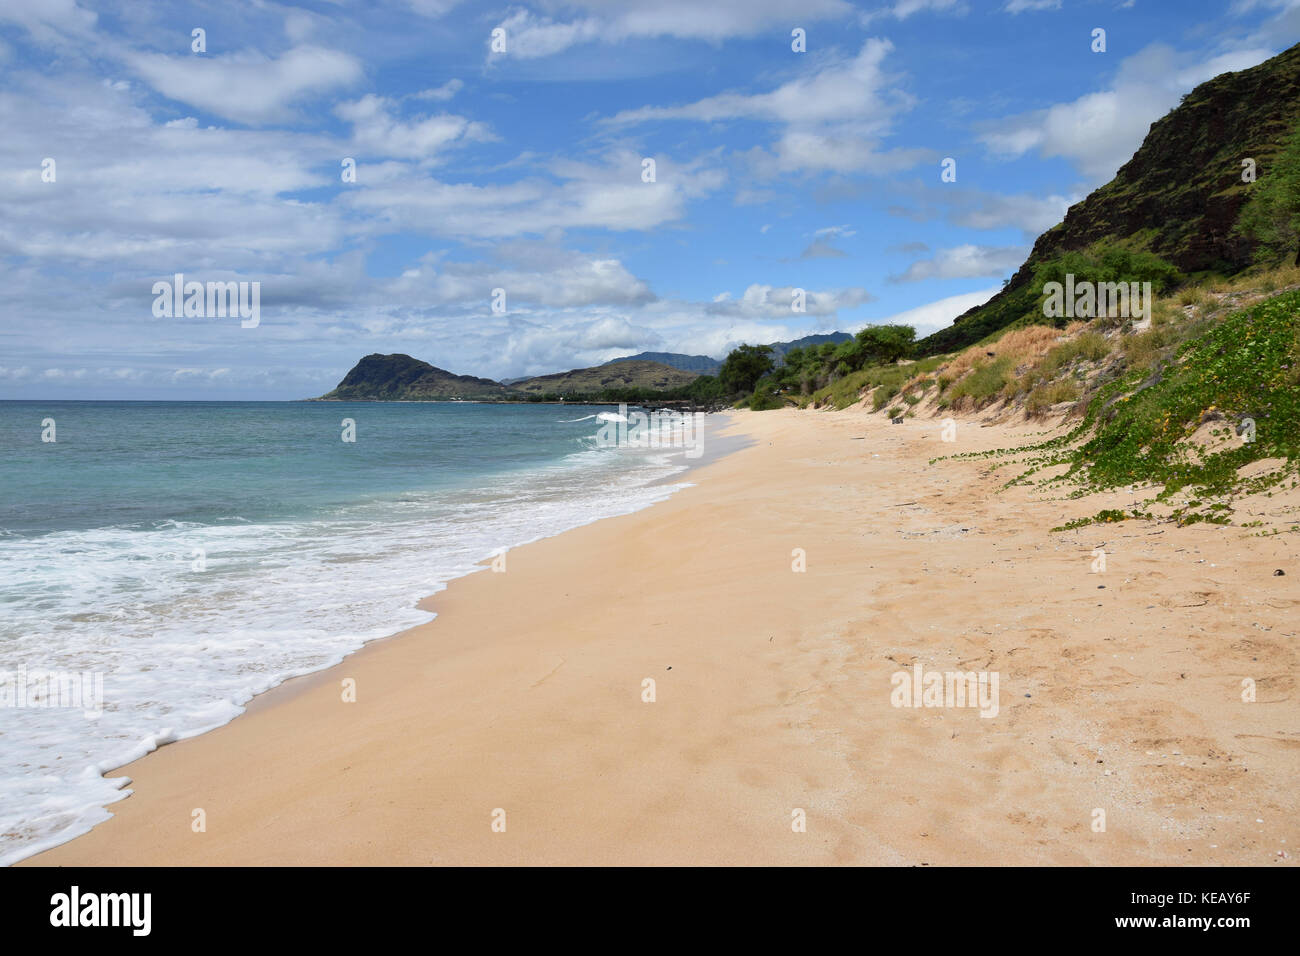 Nanakuli Beach - Oahu, HawaiiStock Photo